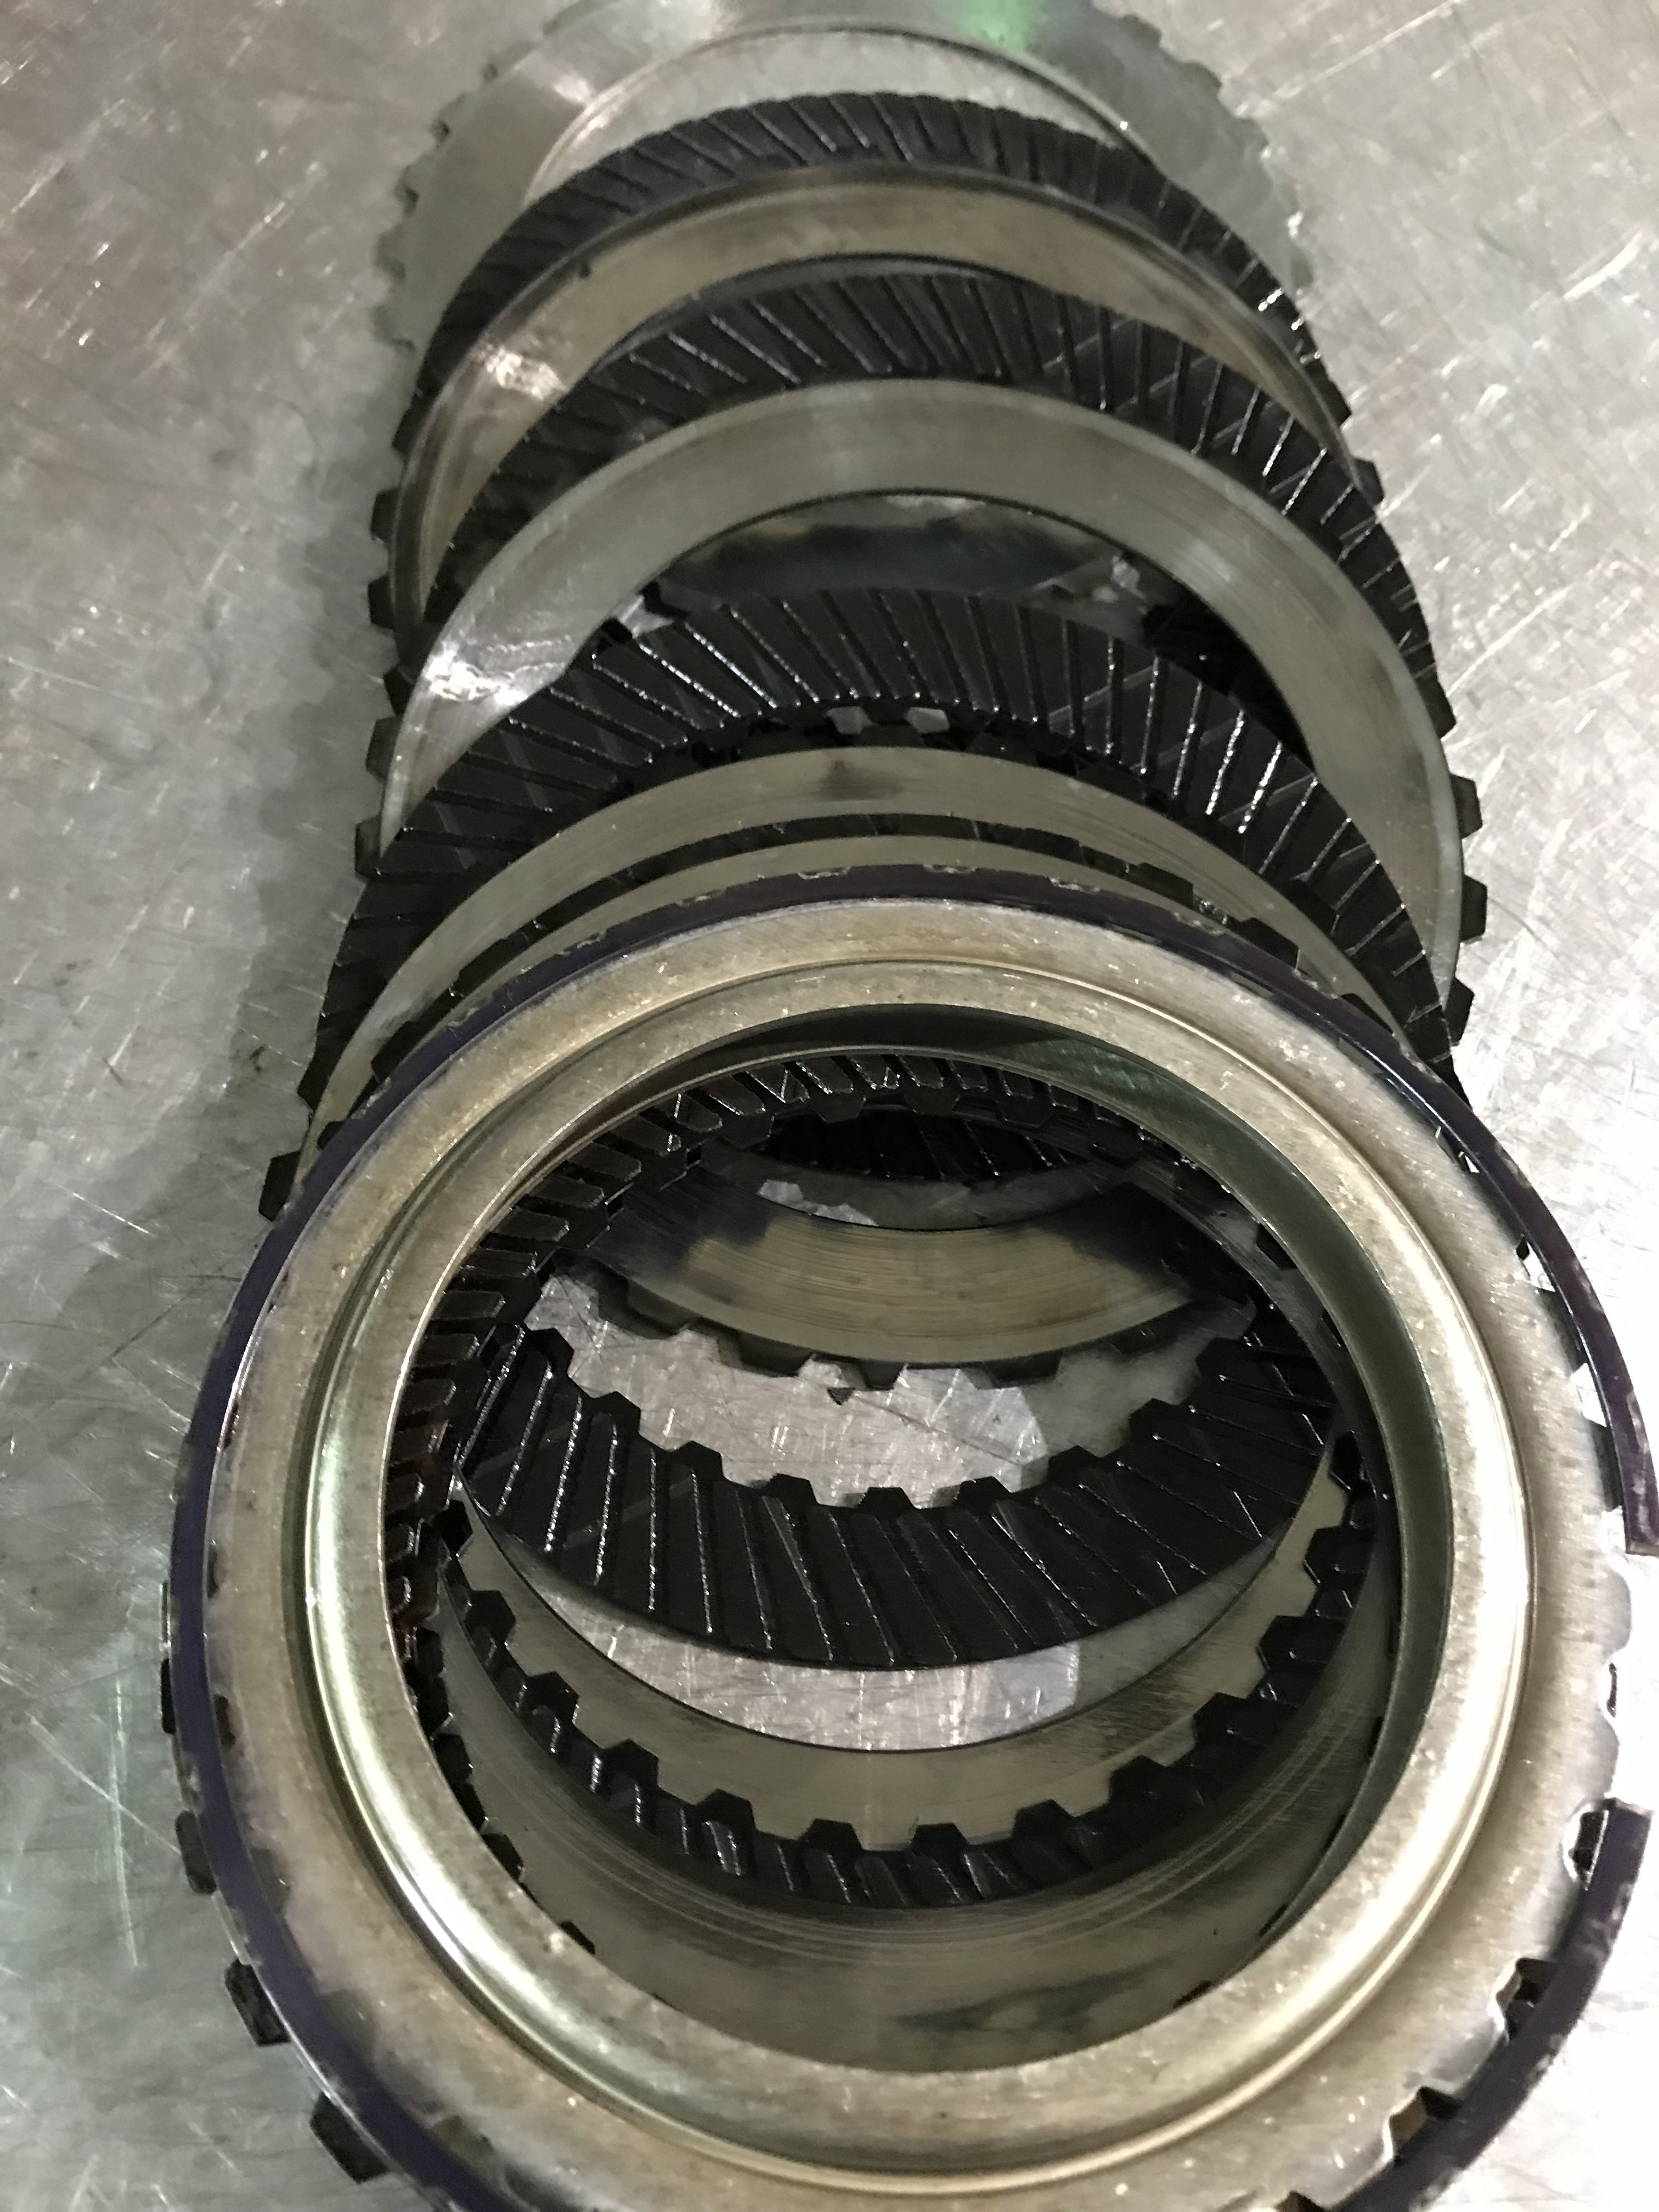 Audi A5 supercharged 7 speed DSG 0b5 defectice clutch pack